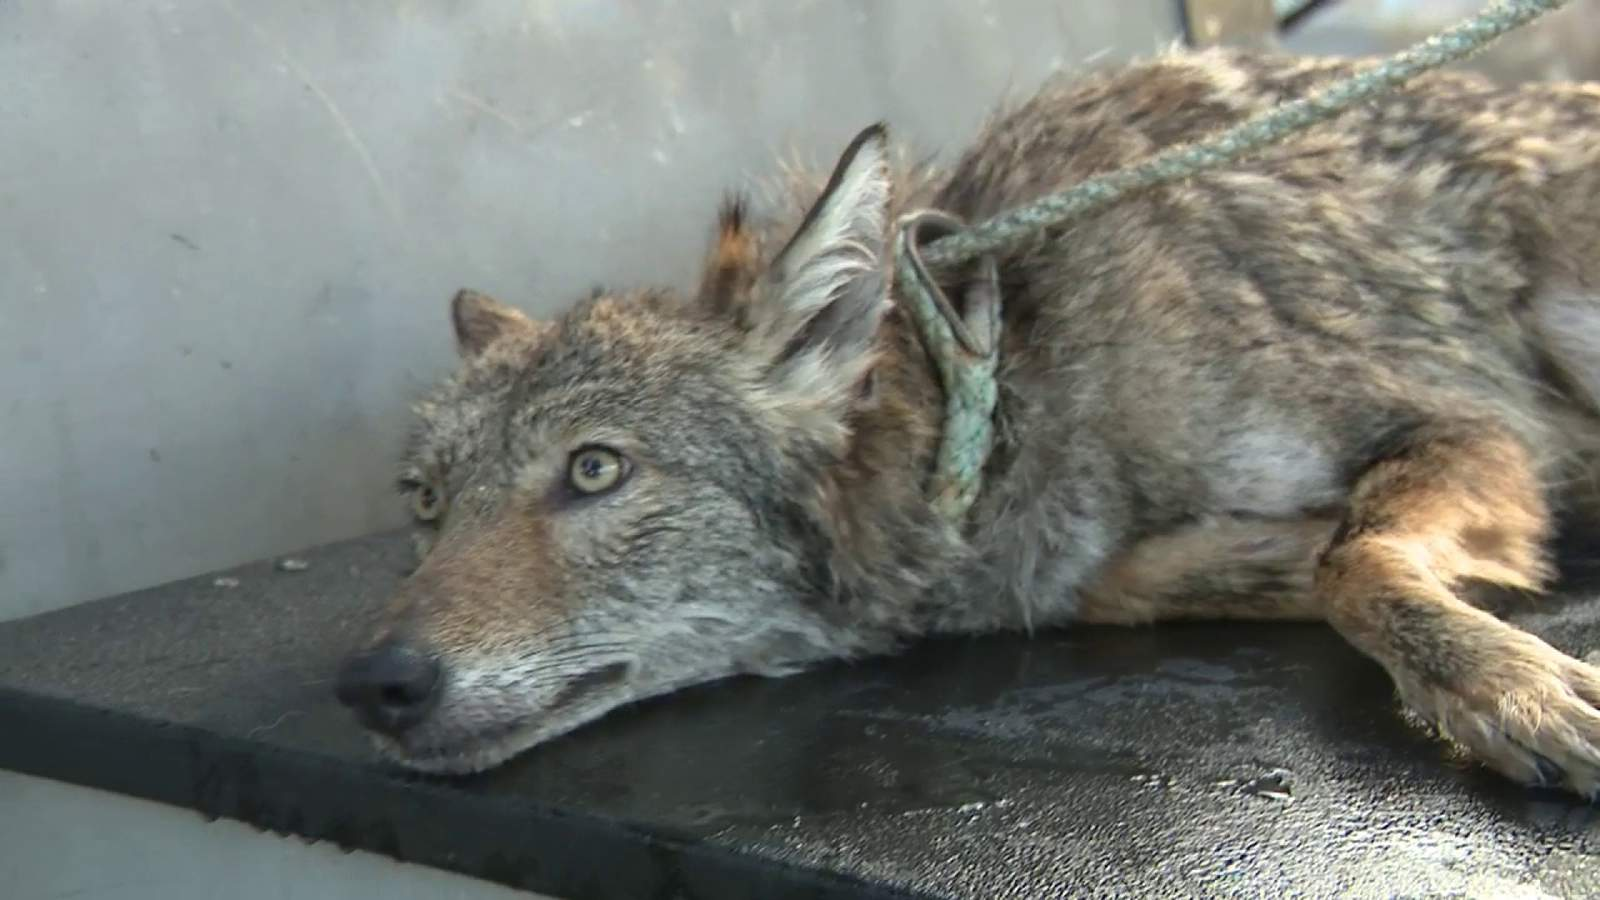 Commissioner who oversees FWC admits admits missteps after rescued coyote was euthanized